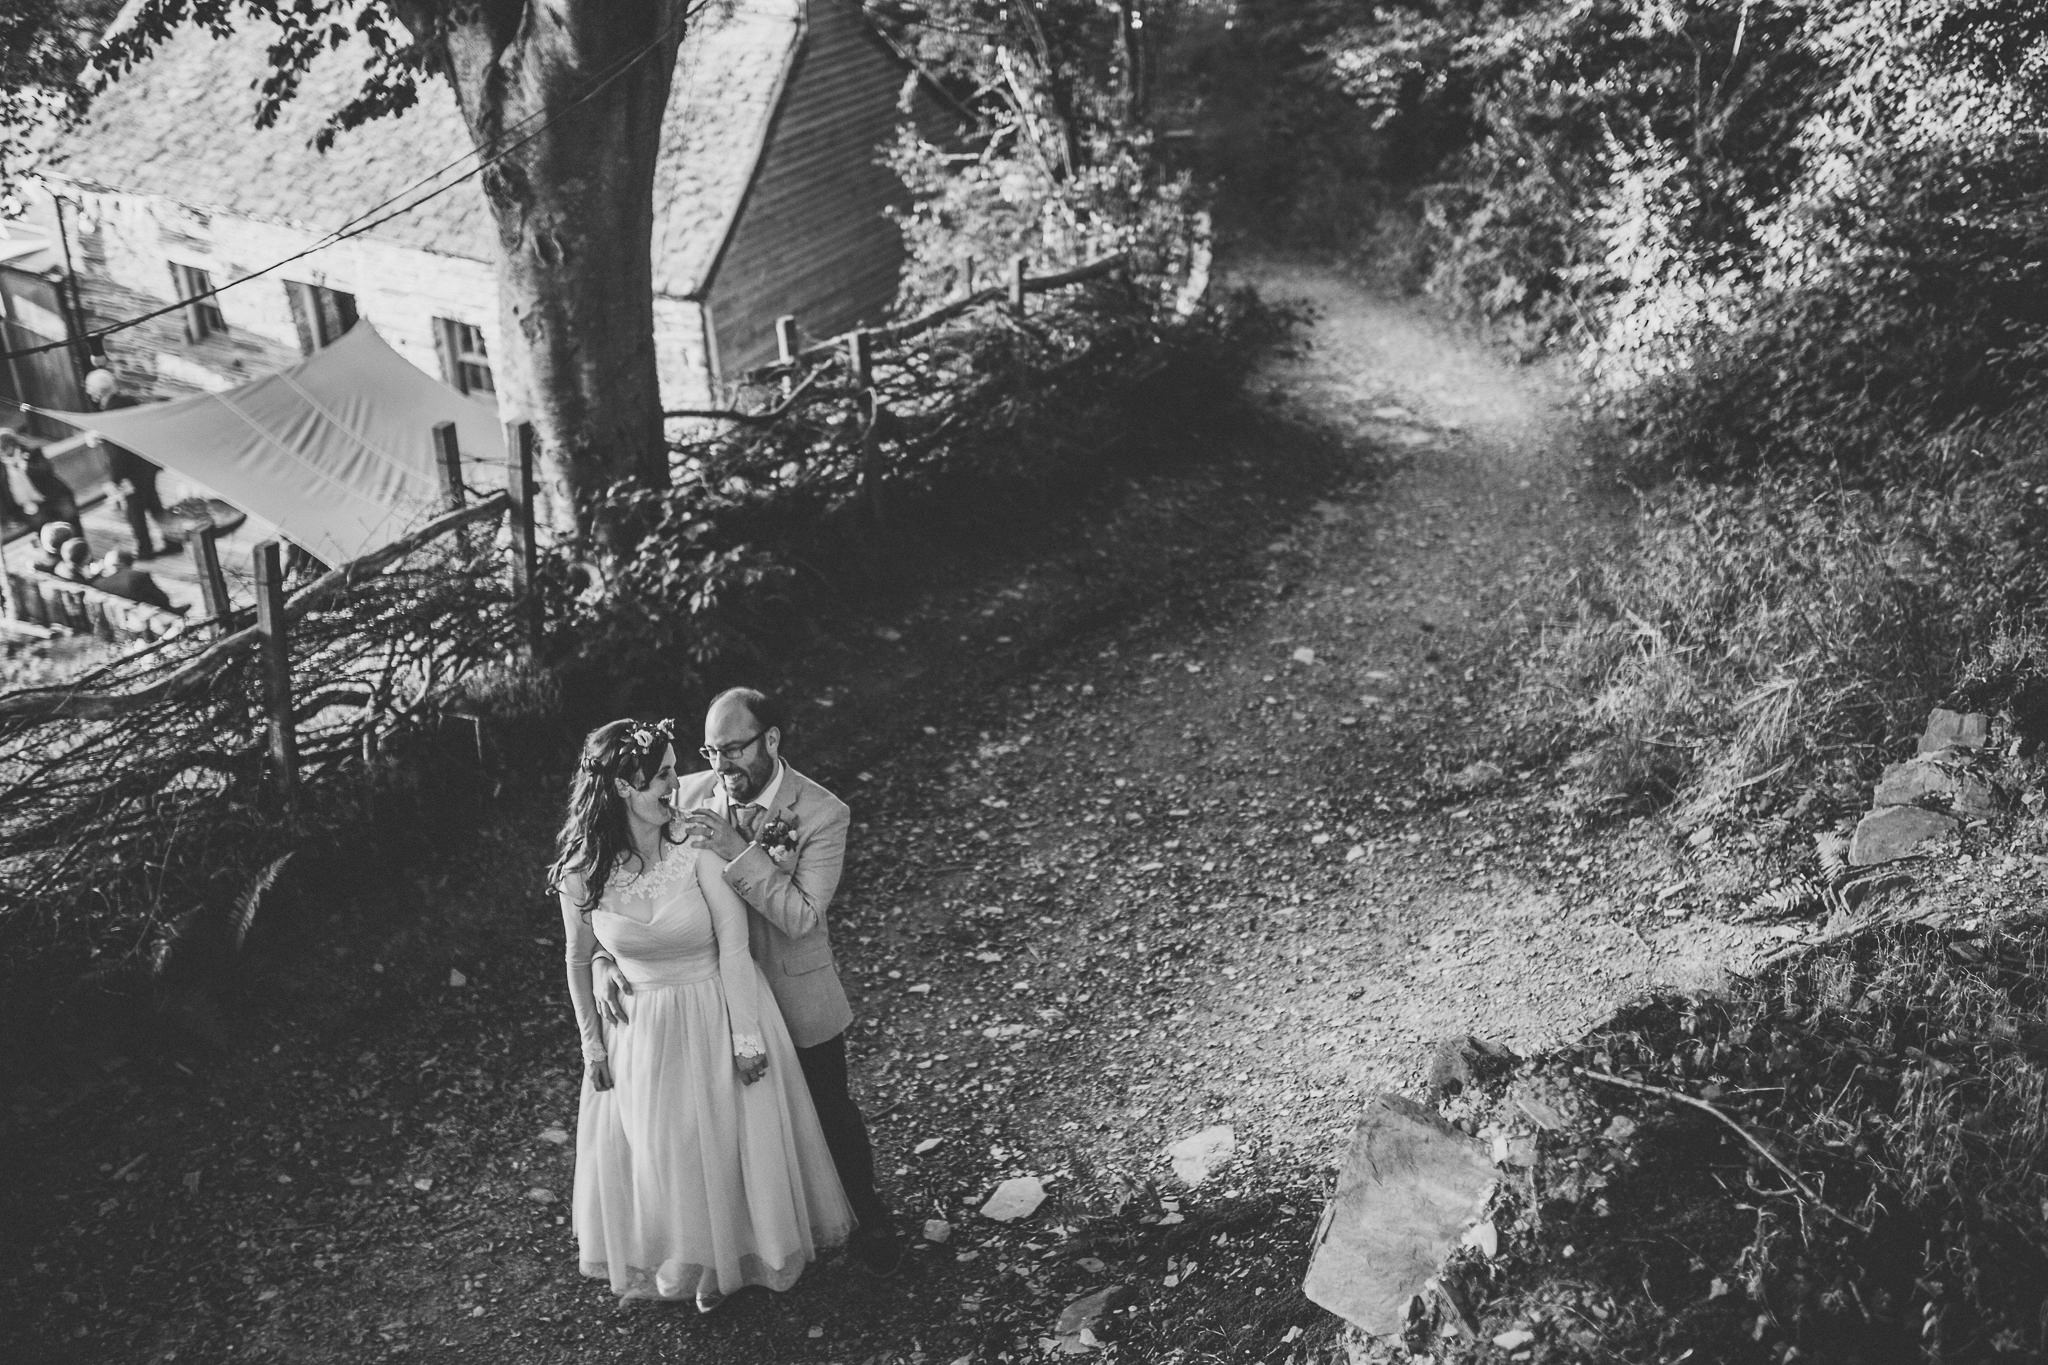 paul-marbrook-Fforest-Wedding-Photographer-90081